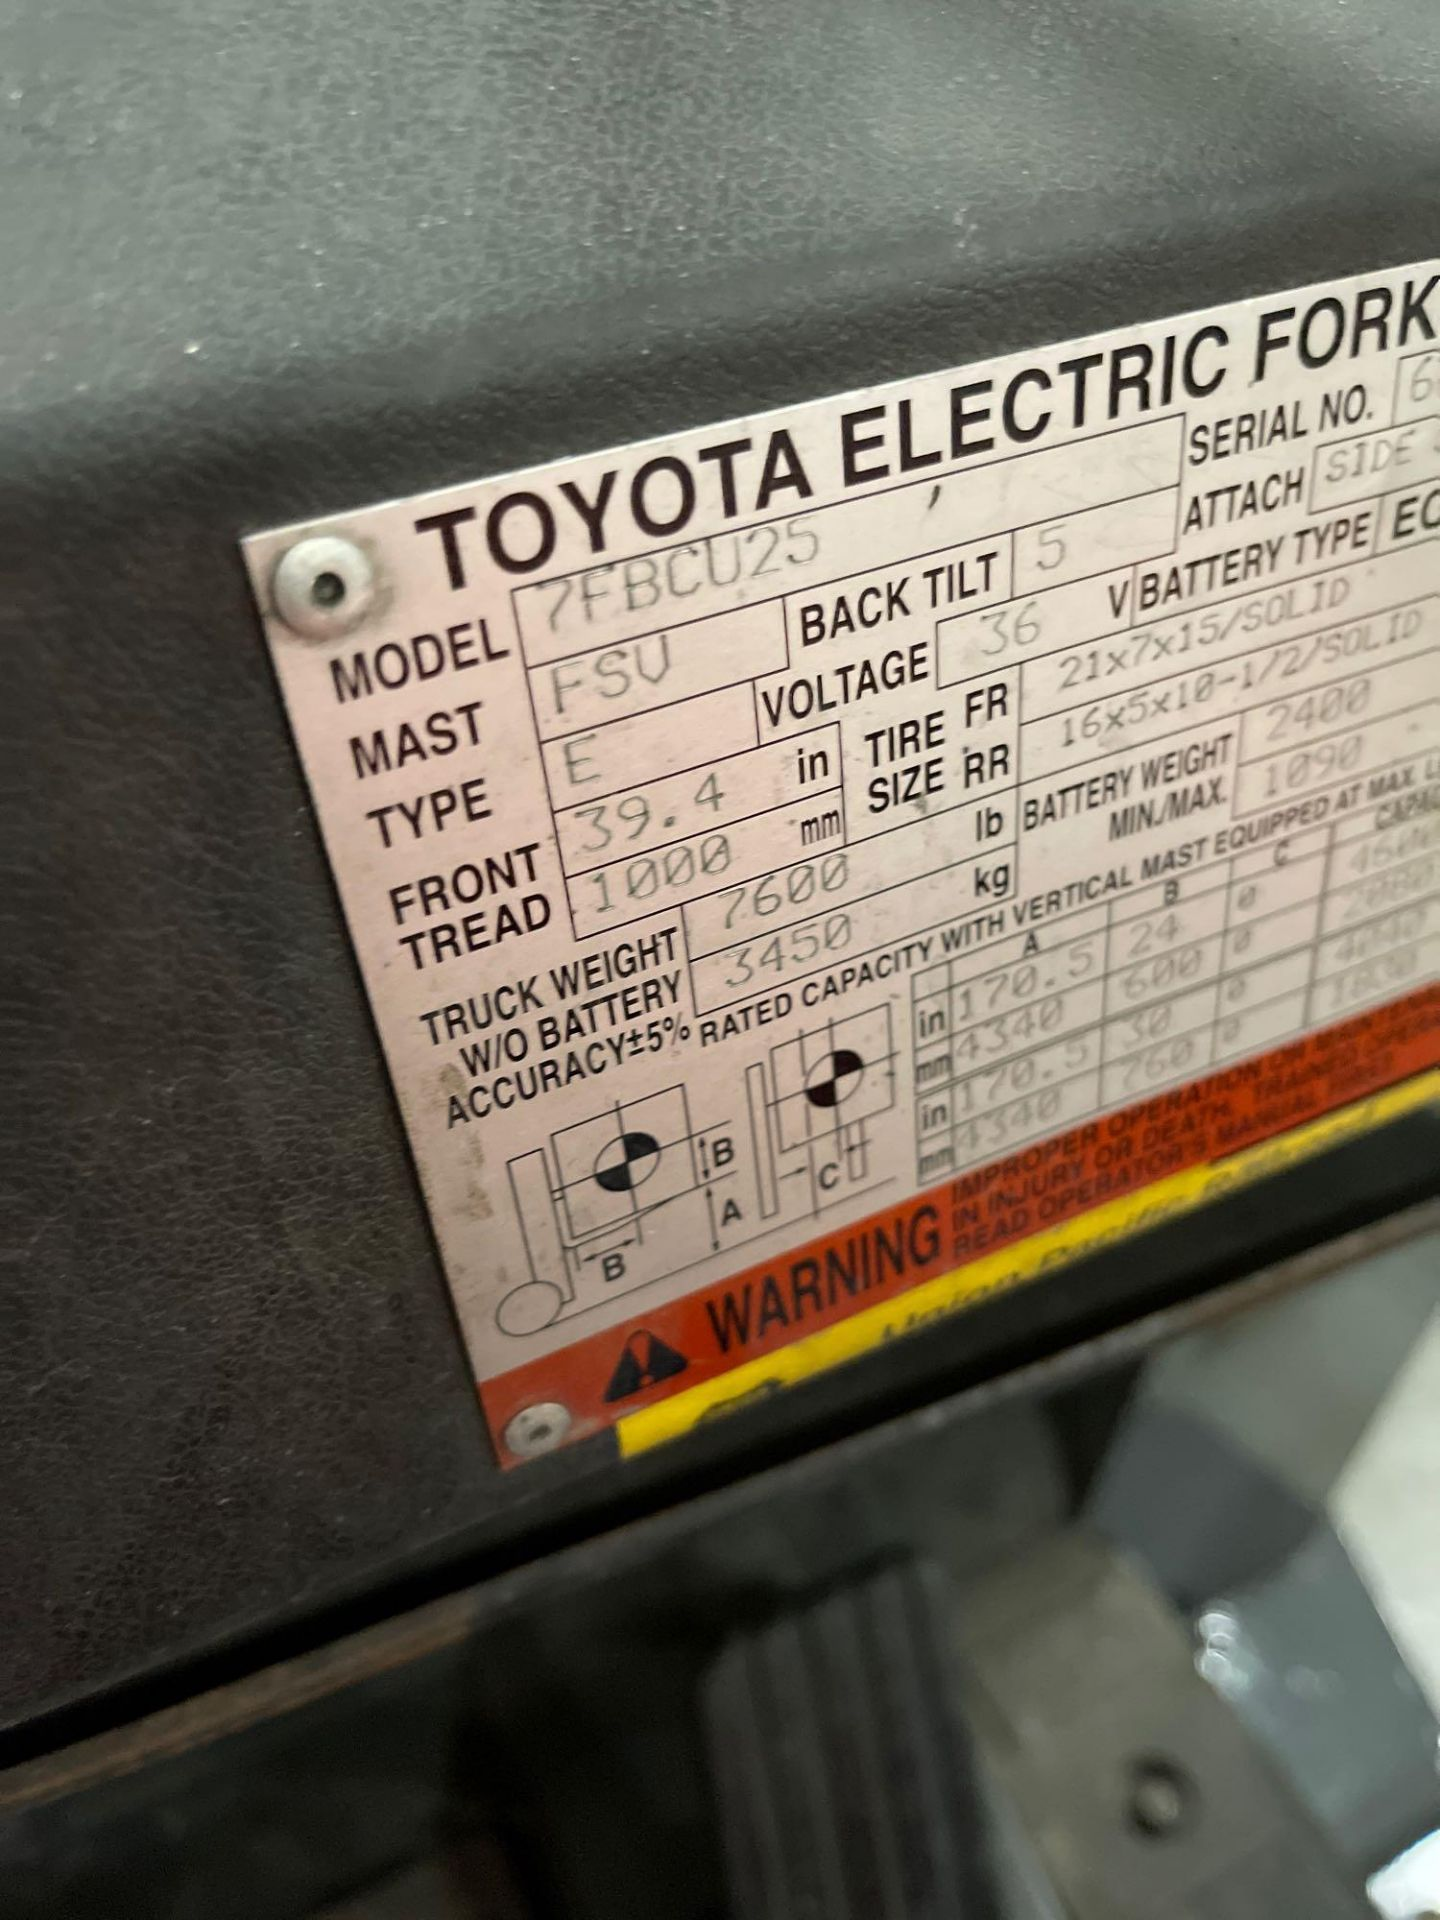 """TOYOTA 7FBCU25 ELECTRIC FORKLIFT, 5,000 LB CAPACITY, 170.5"""" HEIGHT CAPACITY, TILT, SIDE SHIFT - Image 11 of 16"""